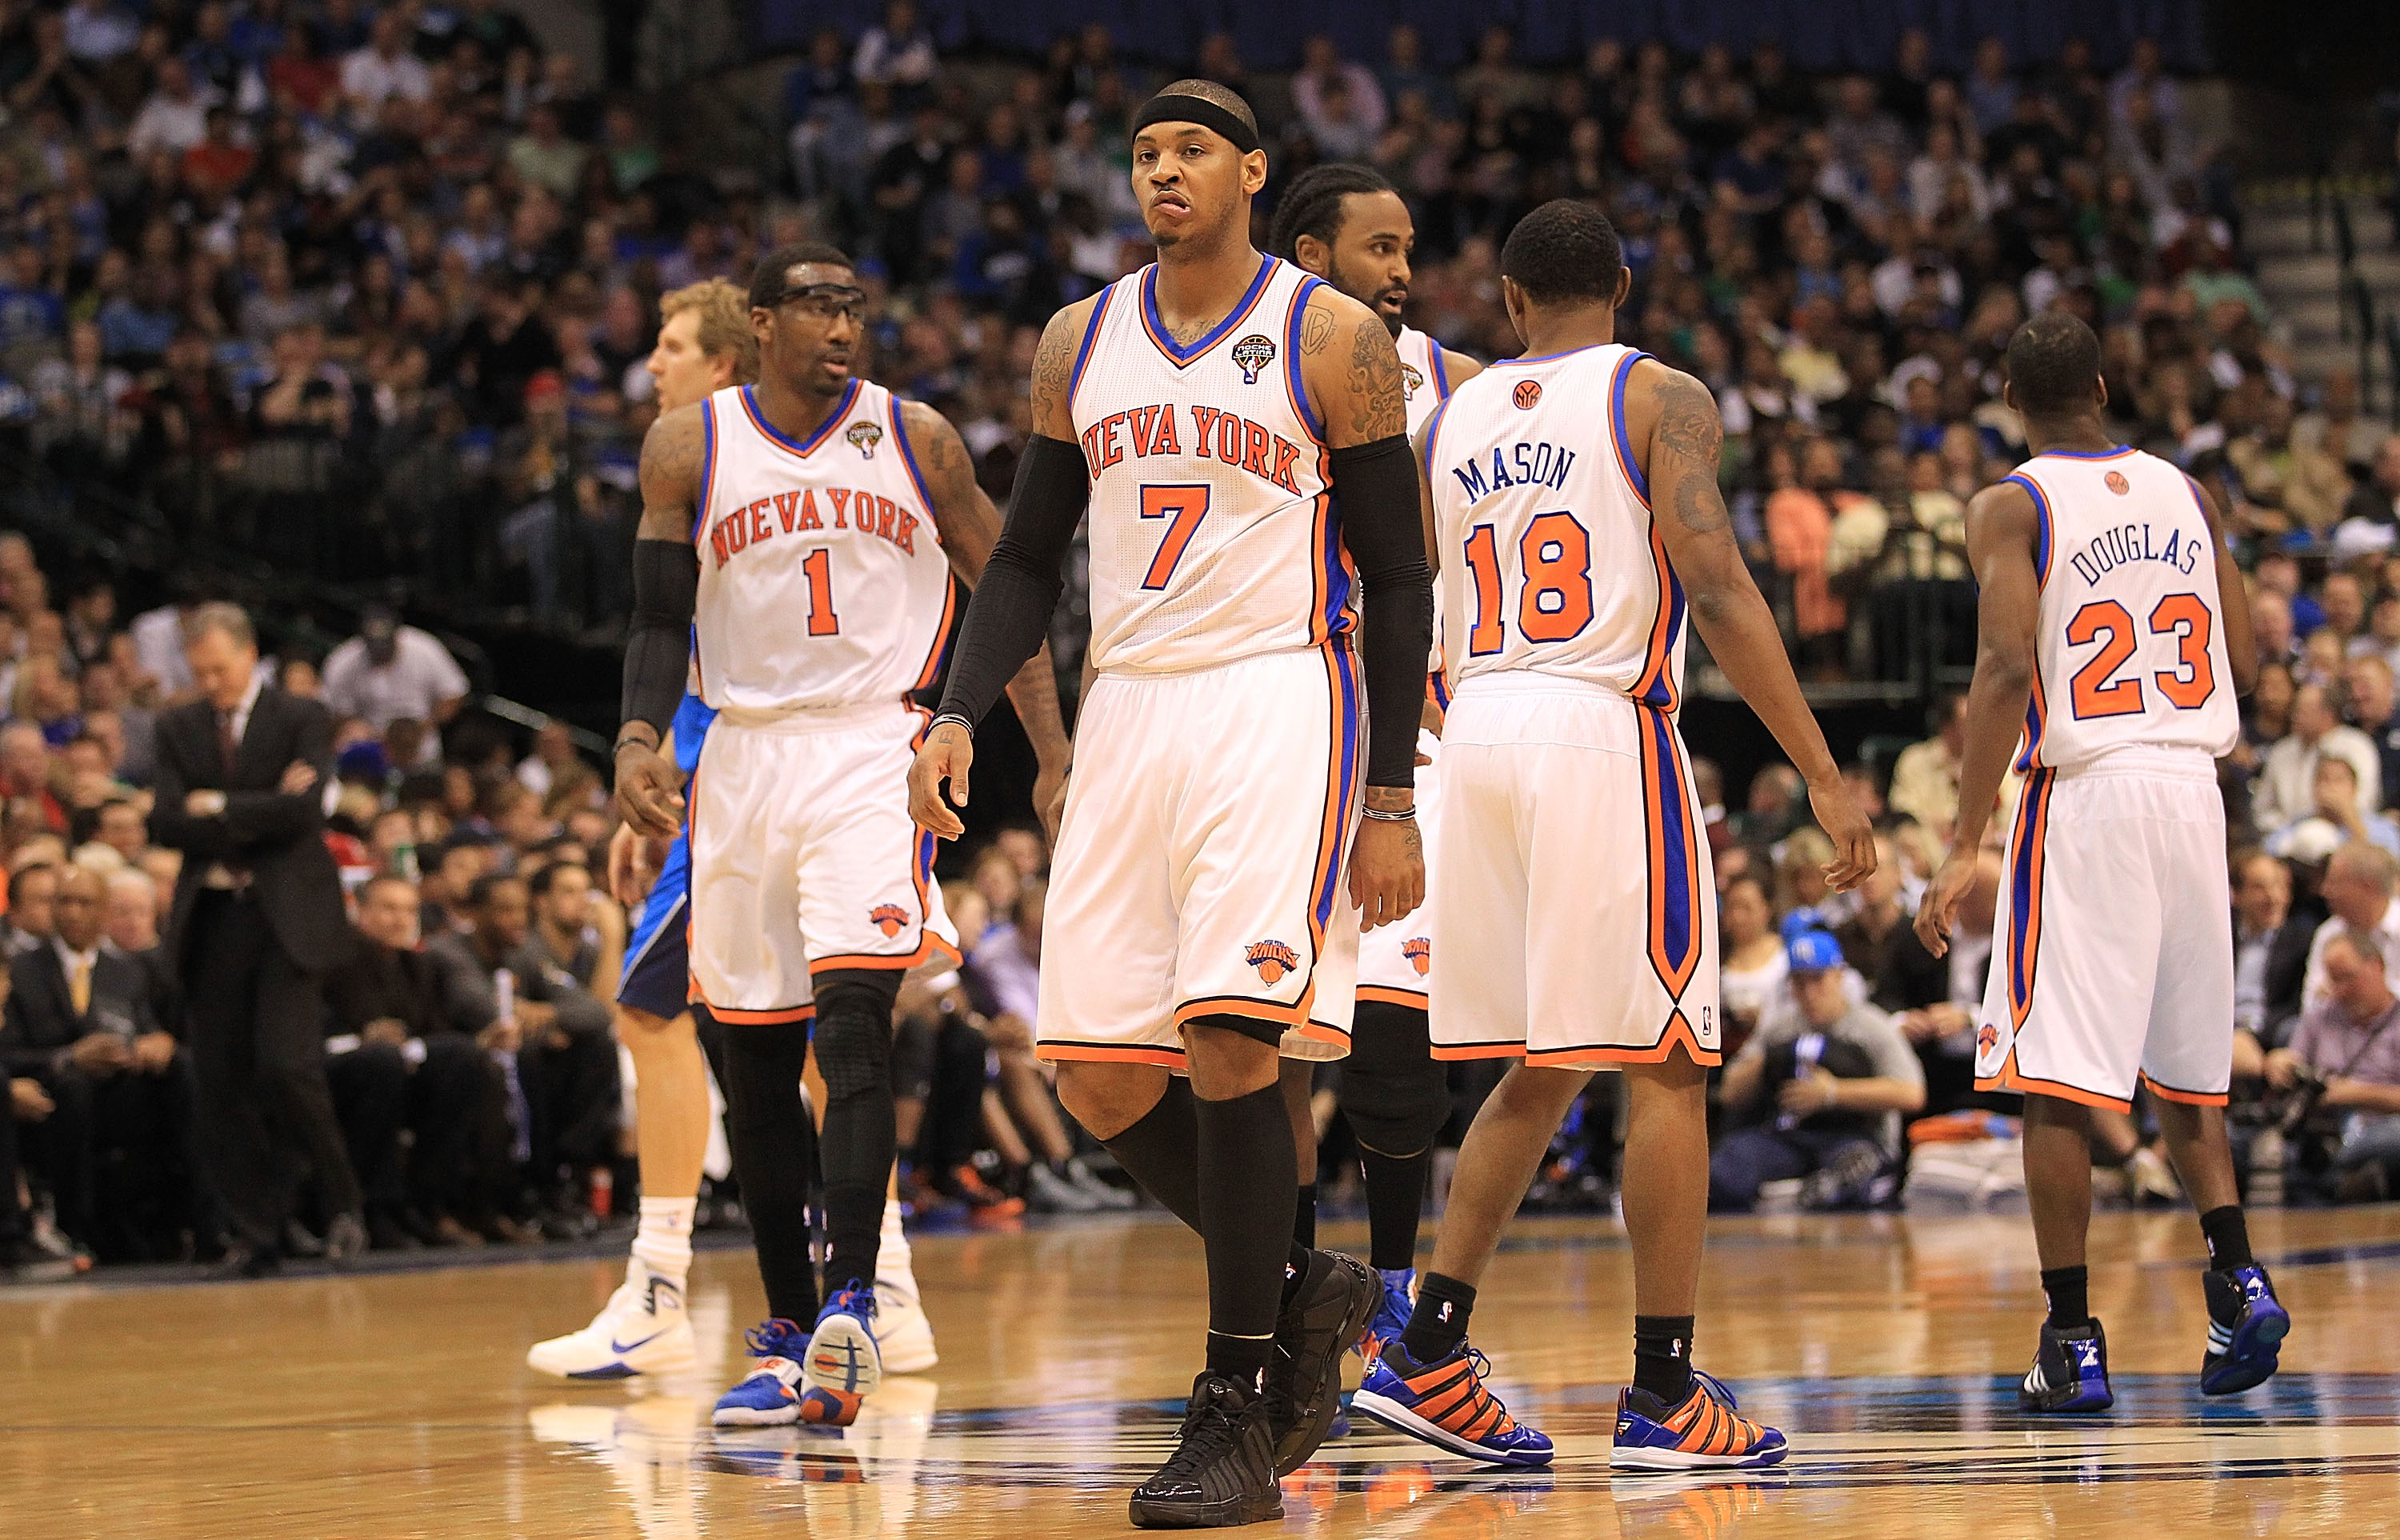 What players can Help Camelo and Amare get closer to a title?